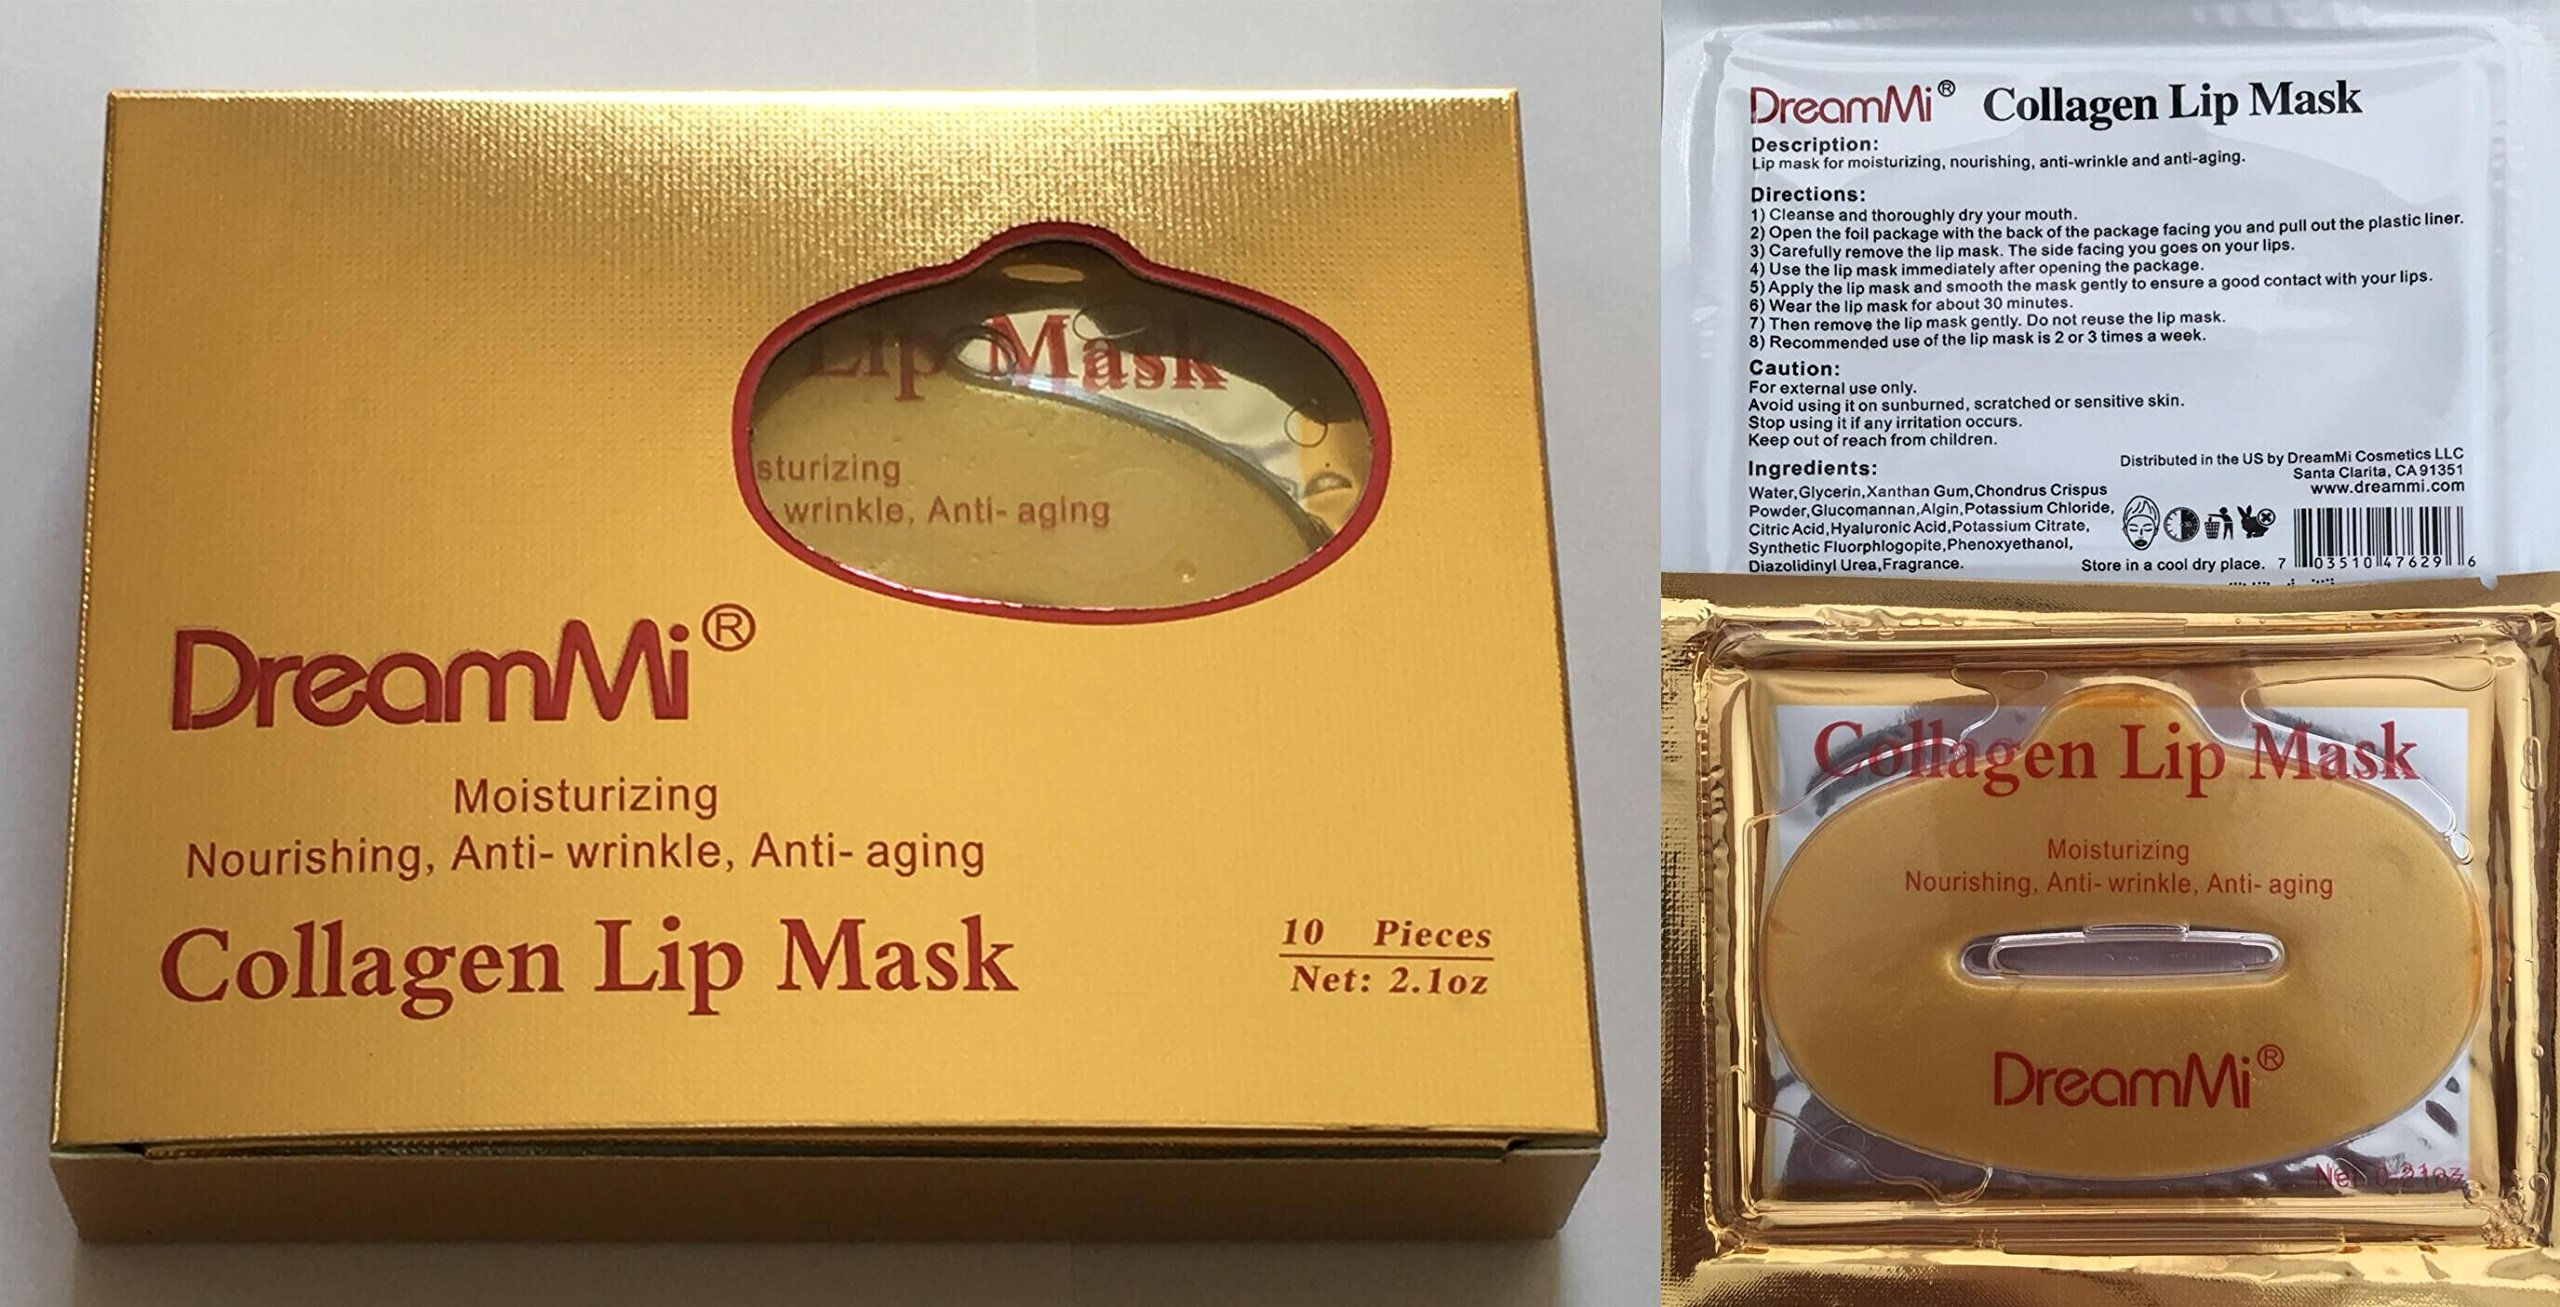 DreamMi 50 Pieces (Comes in 5 Boxes) Gold Bio Collagen Gel Lip Pad Mask Patch Sheet, Moisturizing, Nourishing, Anti Fine Line, Anti Wrinkle and Anti Aging, By DreamMi️